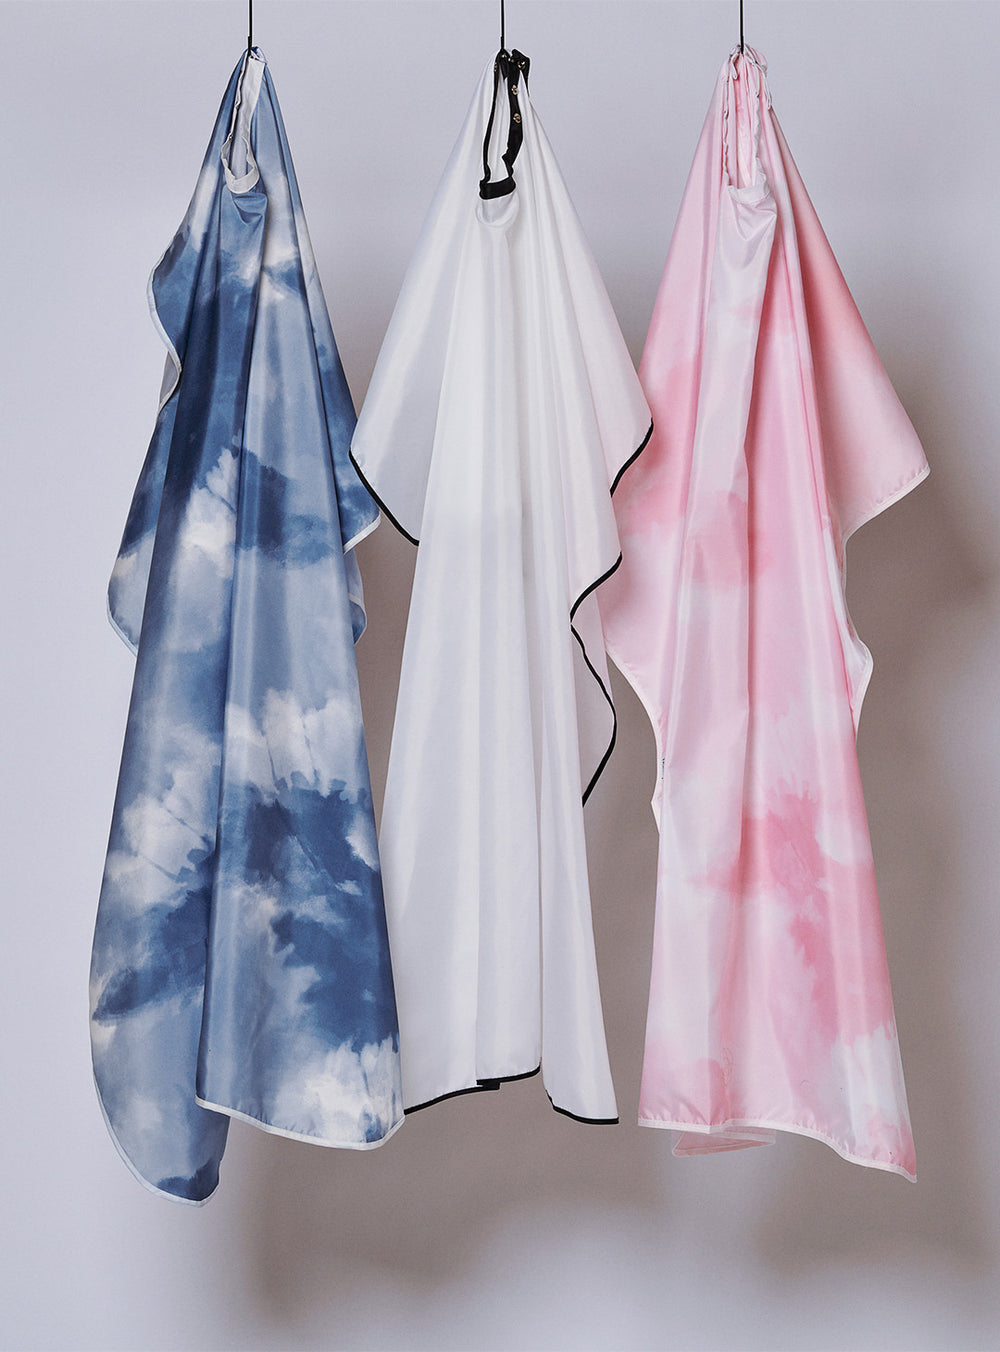 Fromm Pro Professional Hair Salon Blue + Pink Tie Dye & white Hairstyling Capes